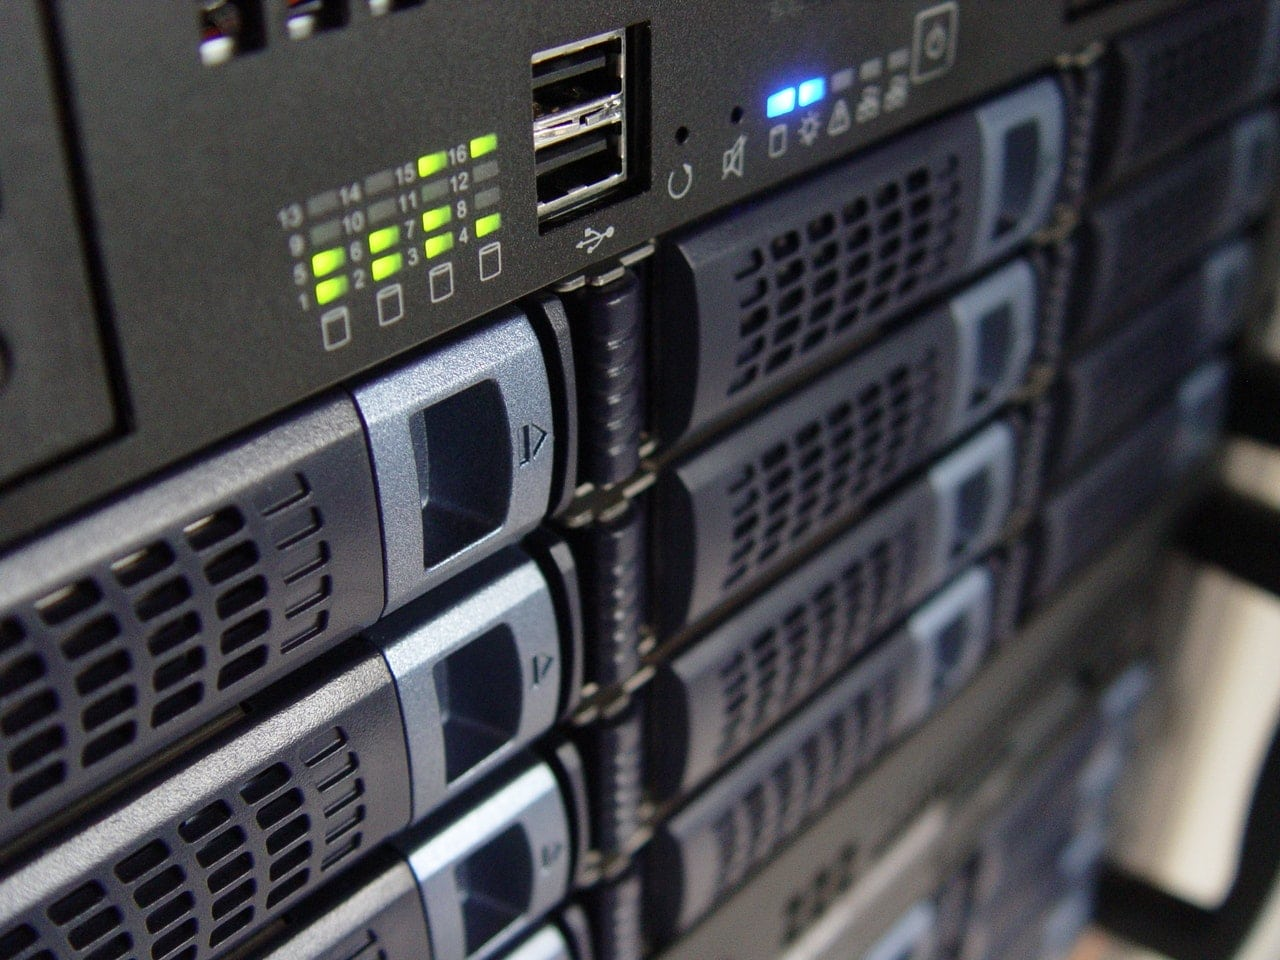 4 Of The Most Important Features In Shared Hosting